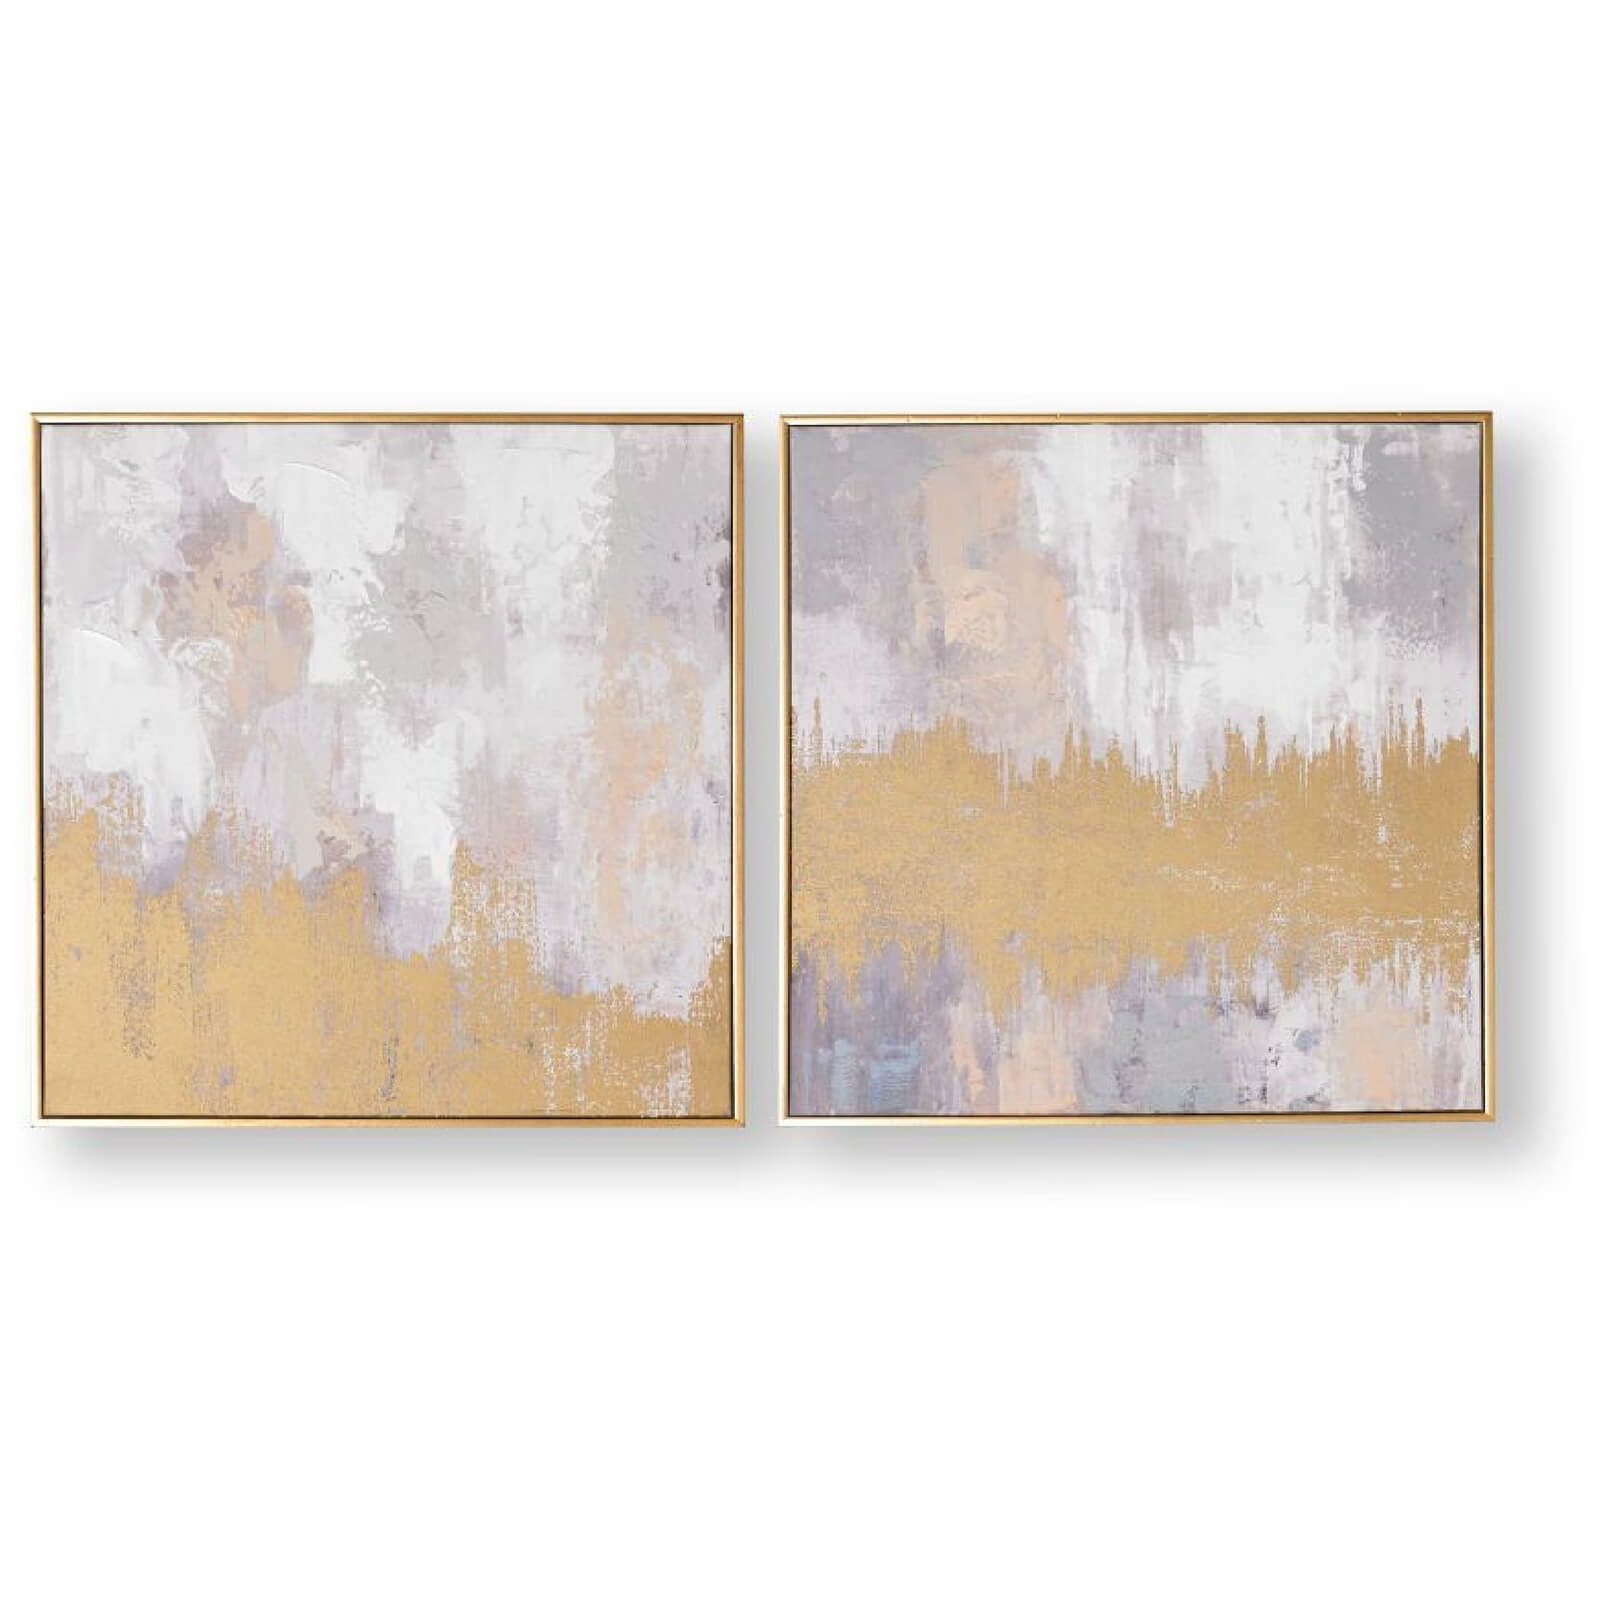 Art for the Home Laguna Mist Framed Printed Canvas (Set of 2)